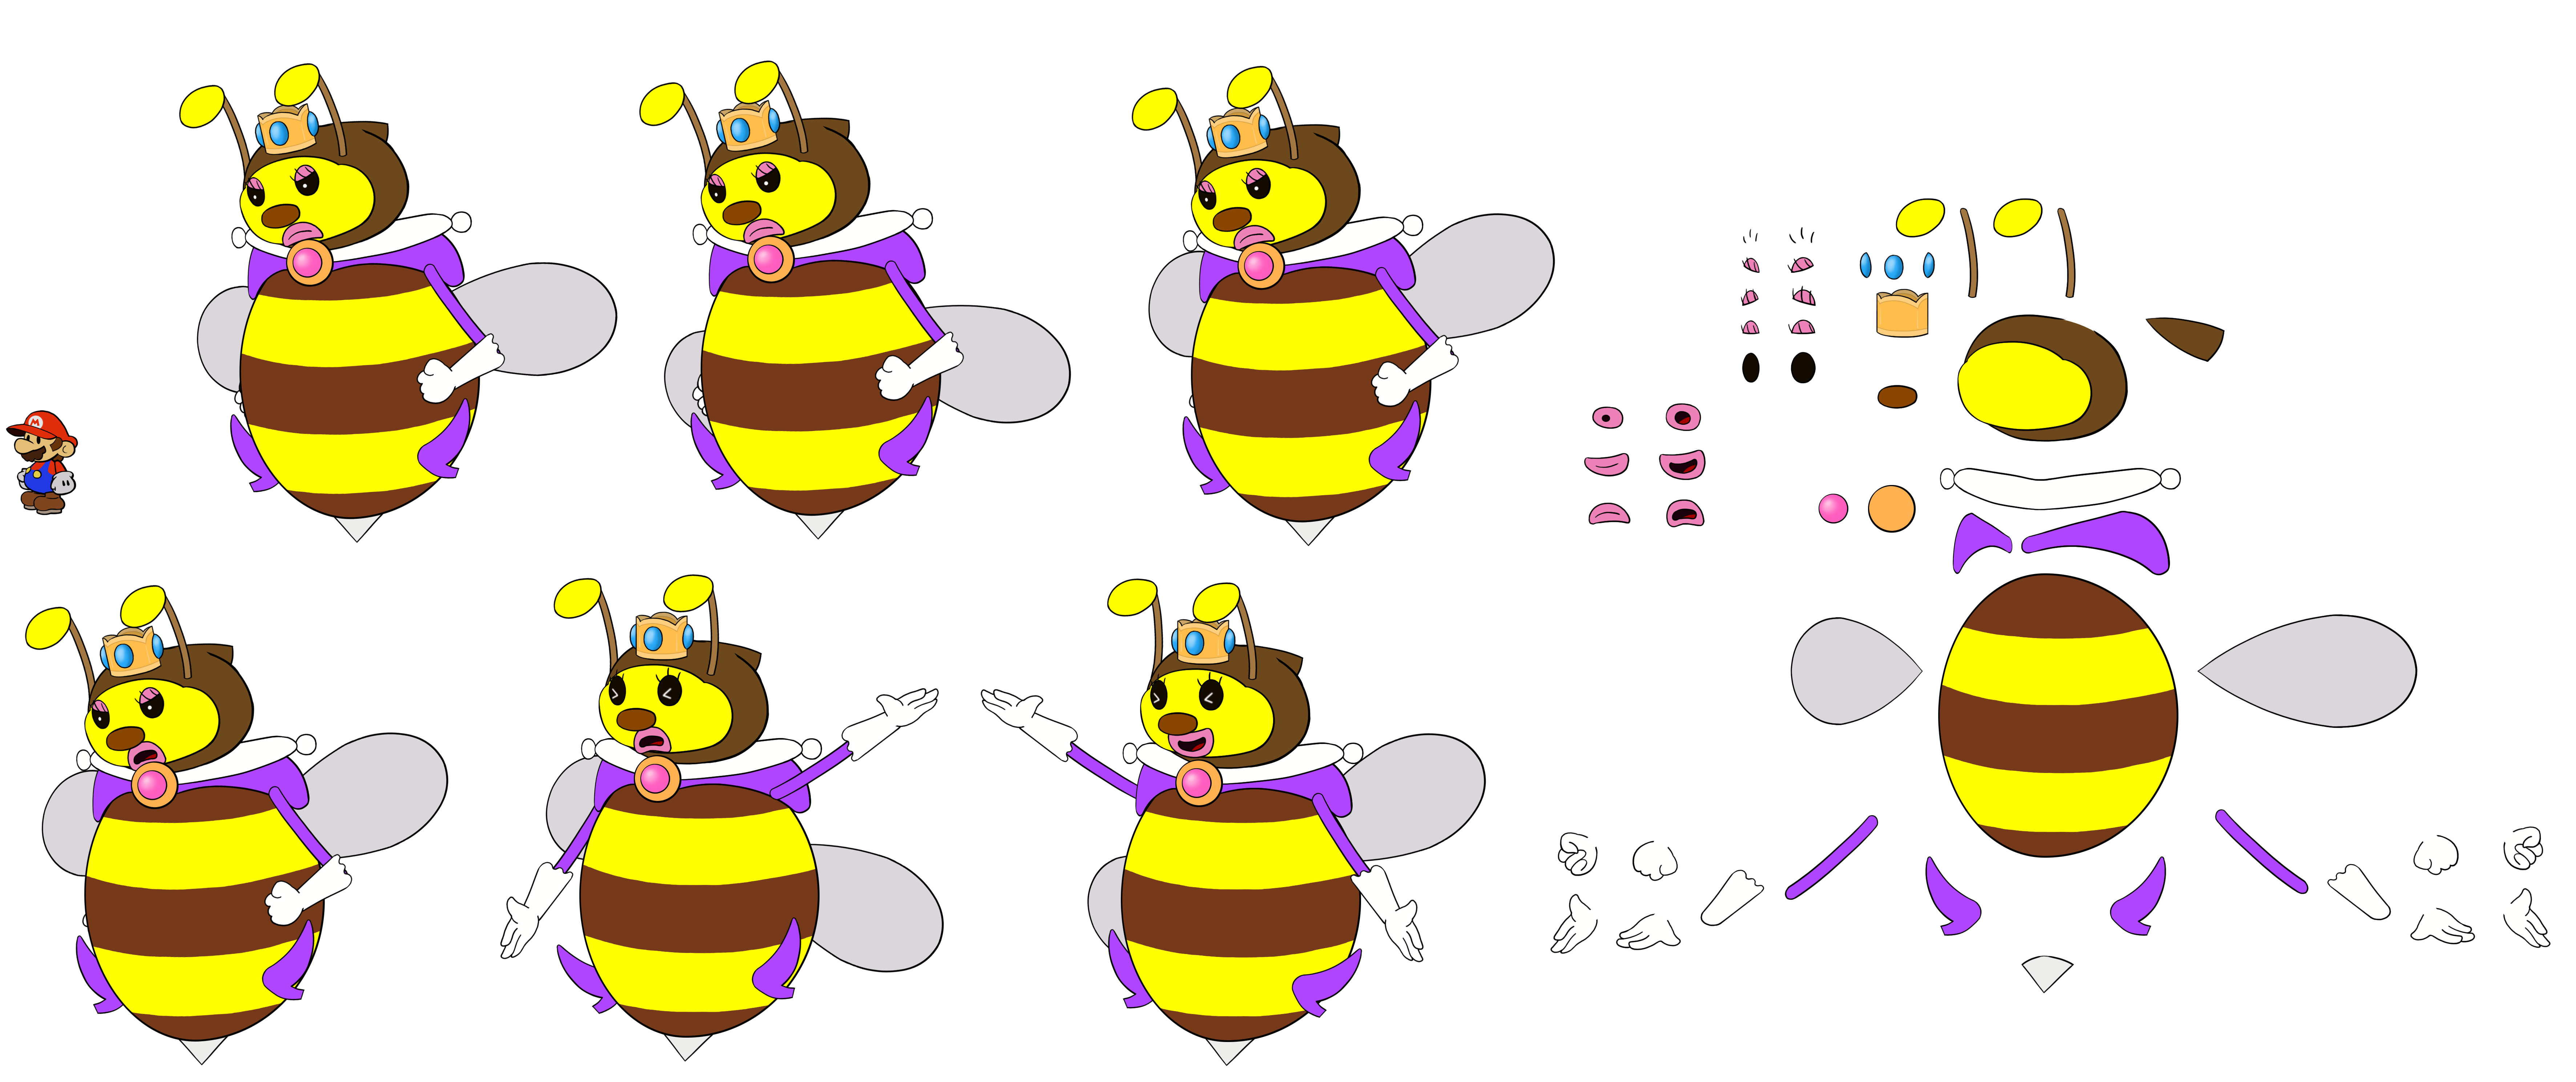 Honey Queen 2 (Paper Mario Style)